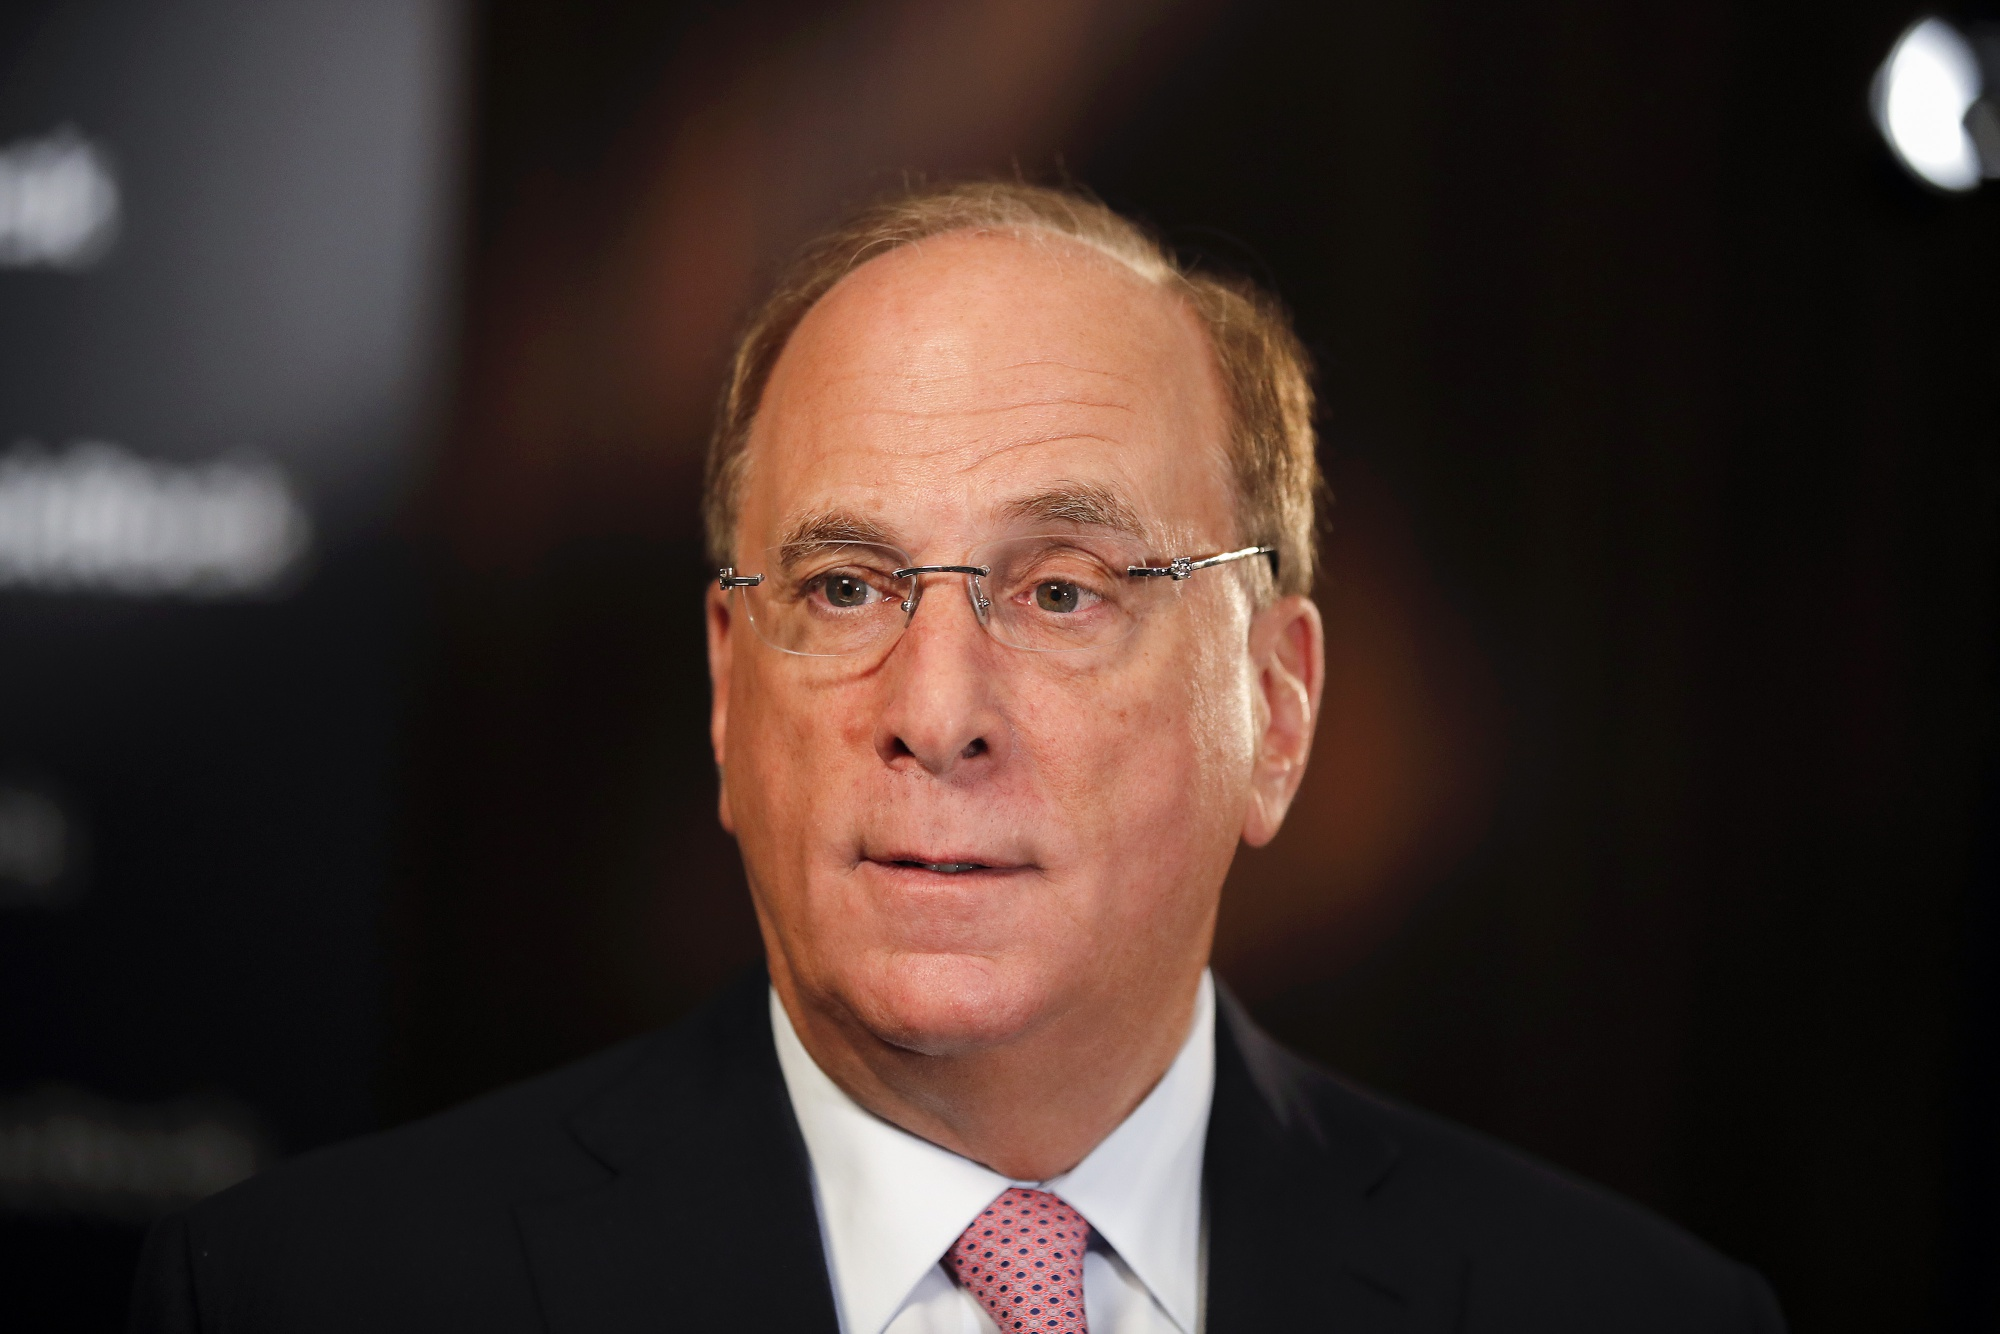 Larry Fink Sees Economy Recovering From Virus But Forever Transformed